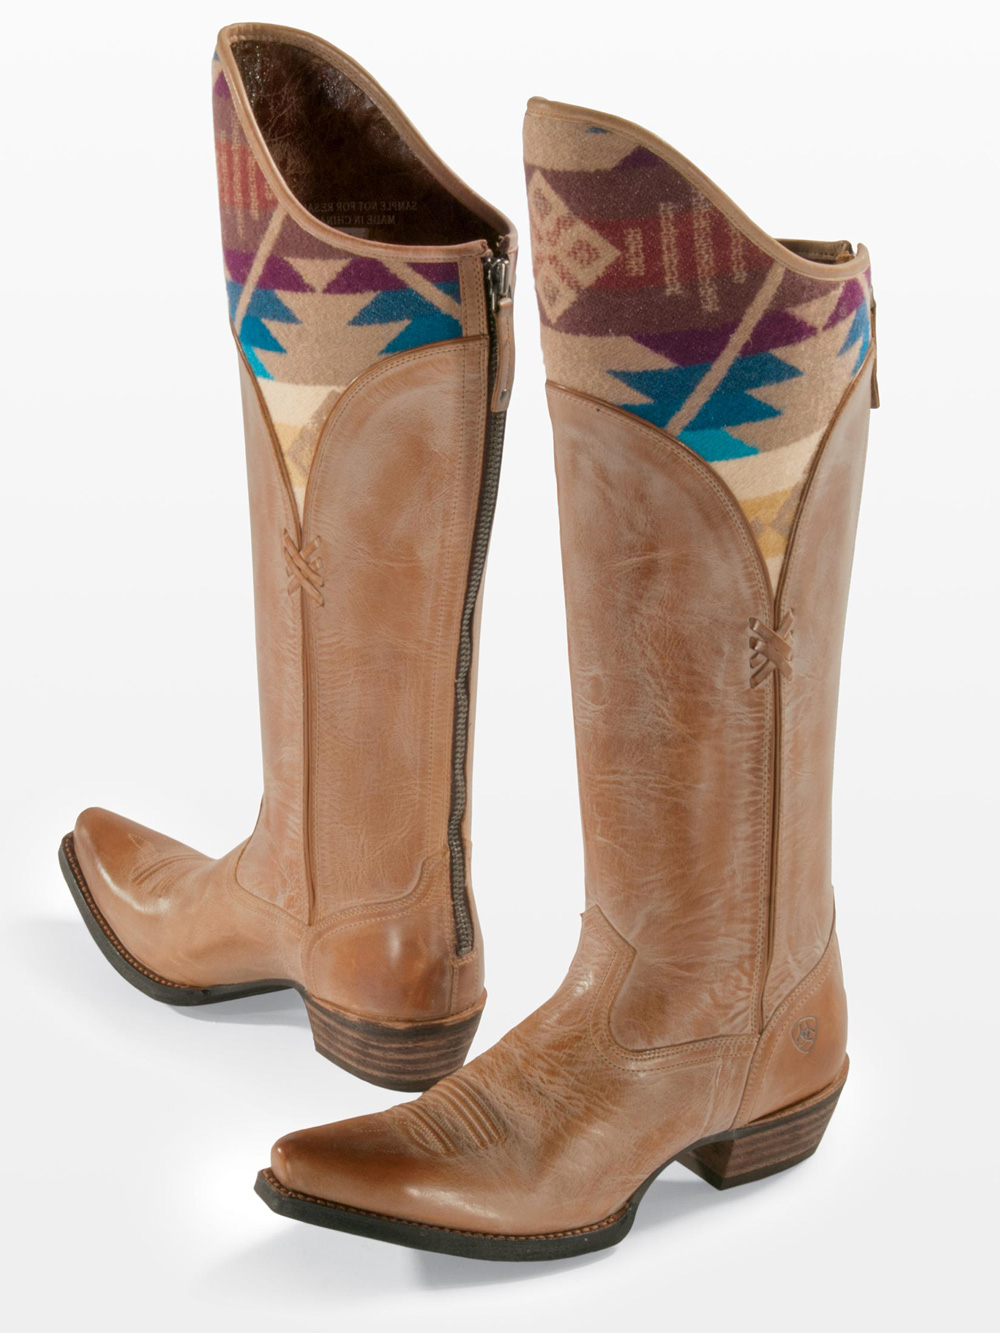 New Pendleton x Ariat Collaboration Boots for Fall | Pendleton ...